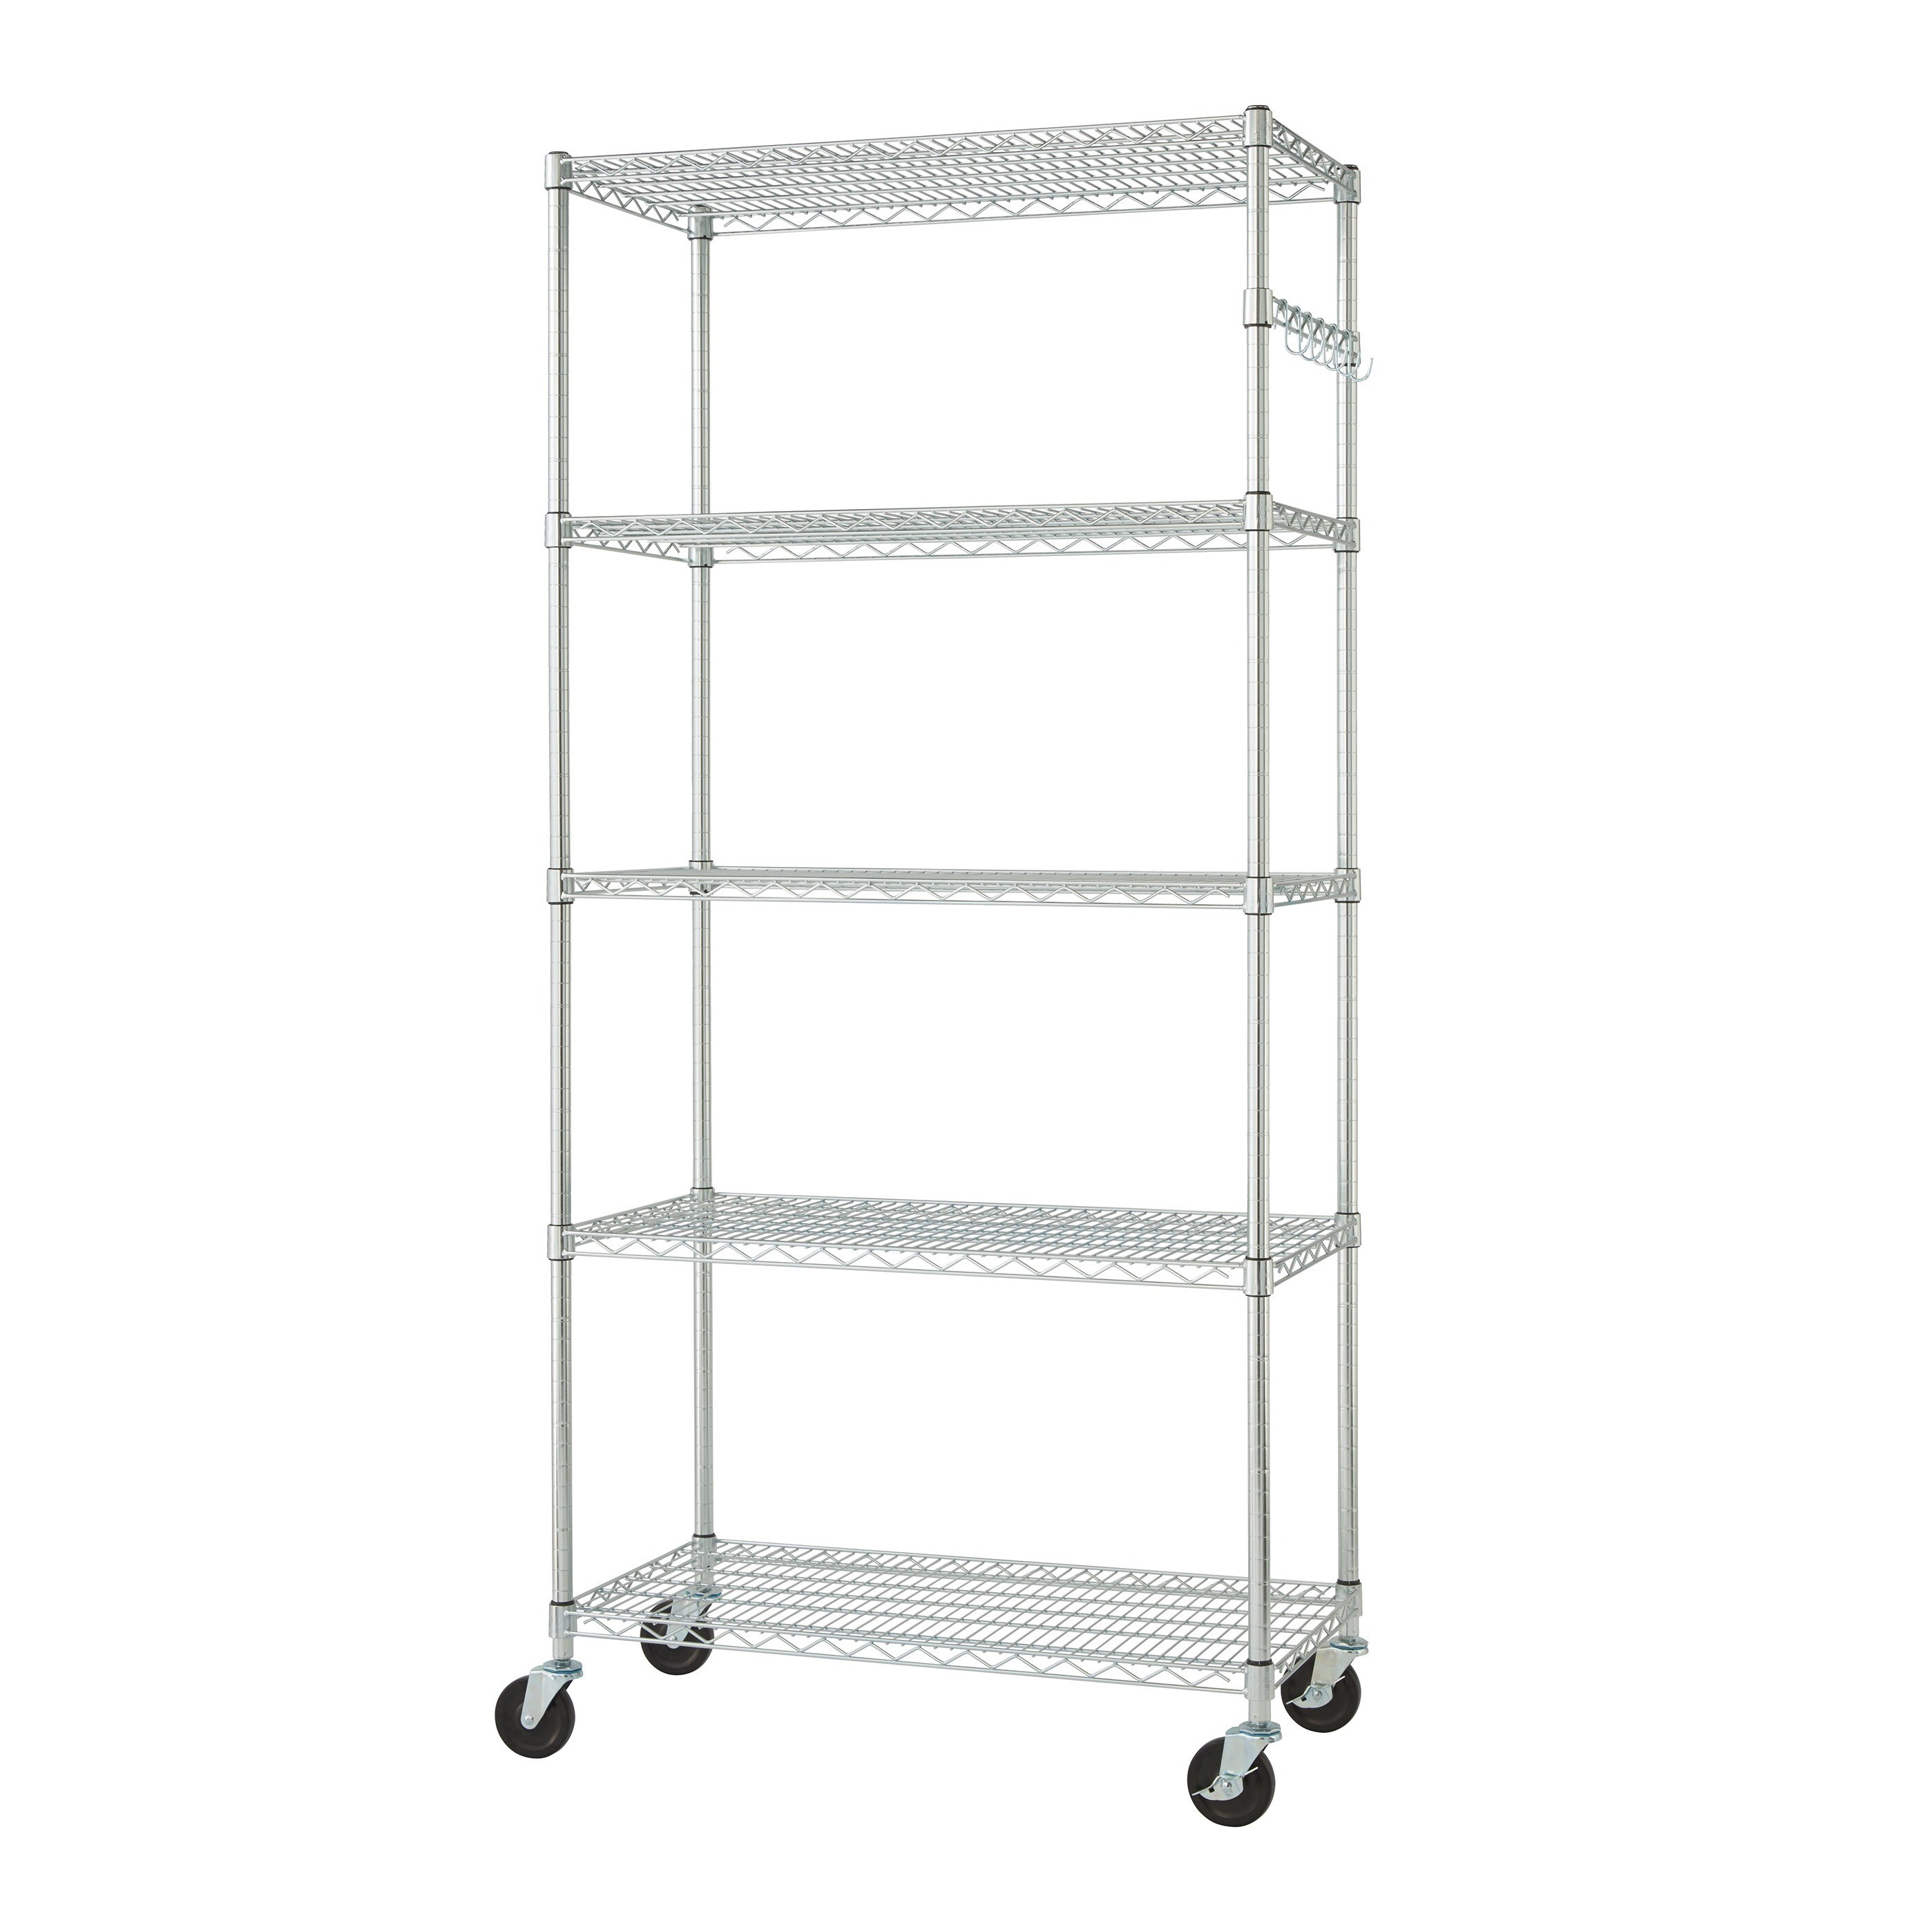 Trinity 36-inch NSF Chrome Wire Shelving Rack - Free Shipping Today ...